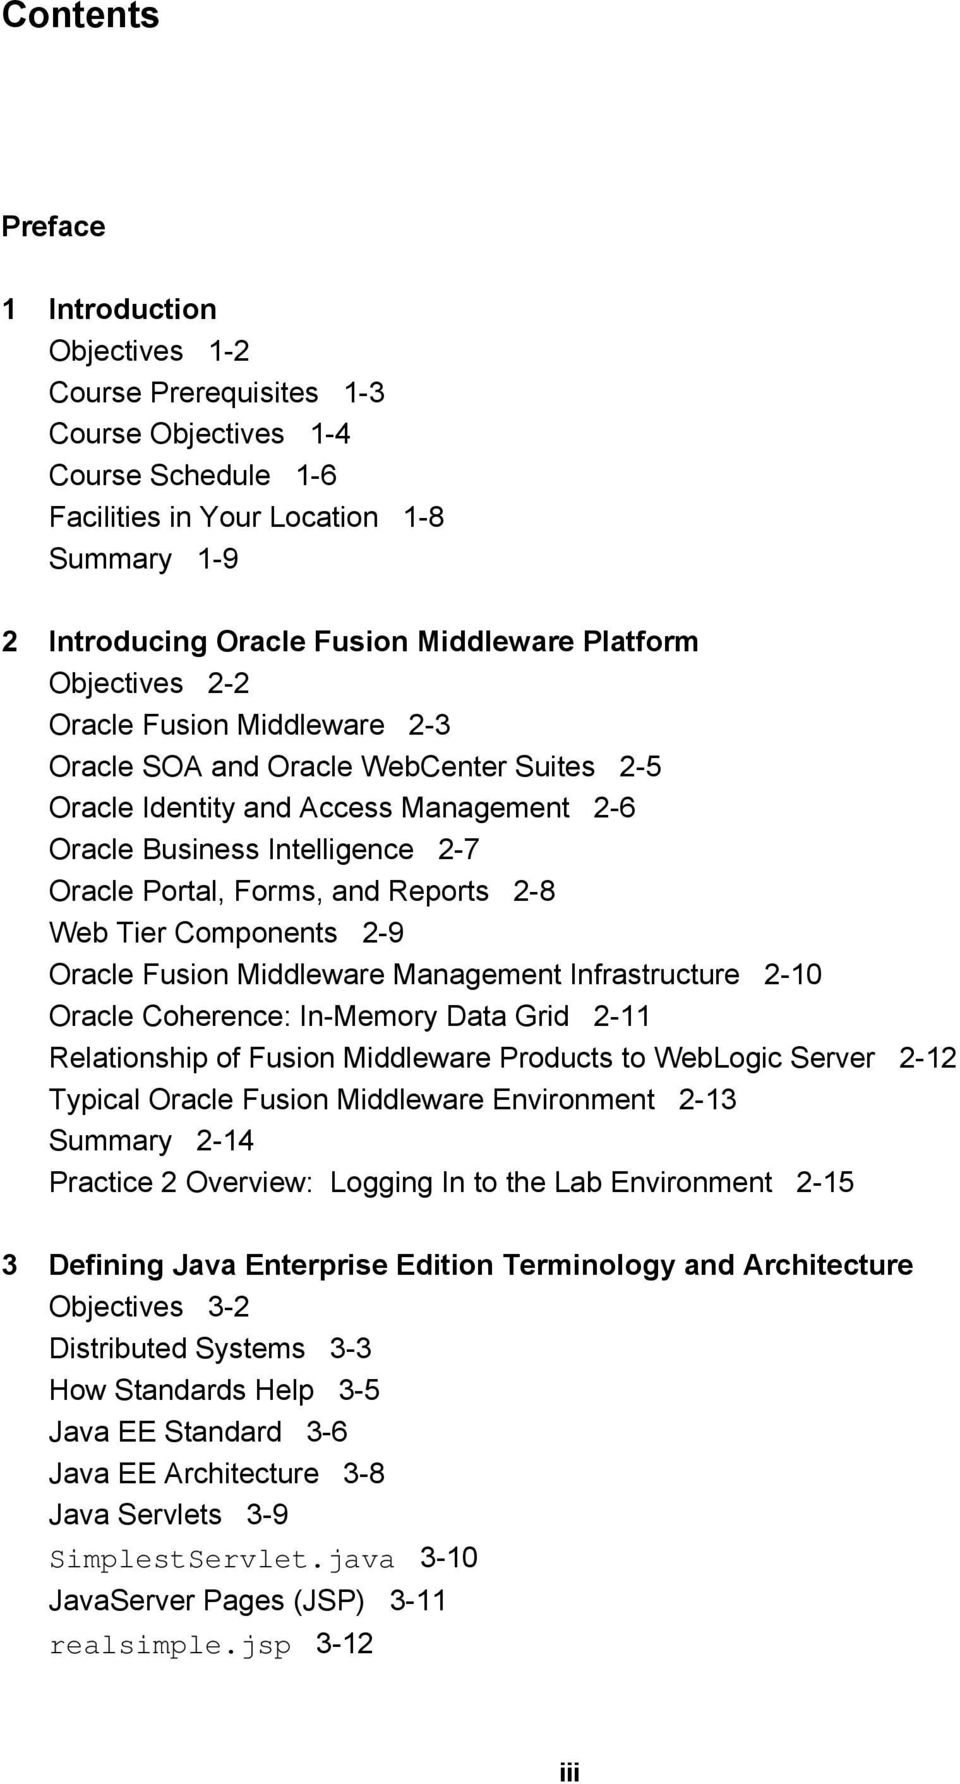 Reports 2-8 Web Tier Components 2-9 Oracle Fusion Middleware Management Infrastructure 2-10 Oracle Coherence: In-Memory Data Grid 2-11 Relationship of Fusion Middleware Products to WebLogic Server